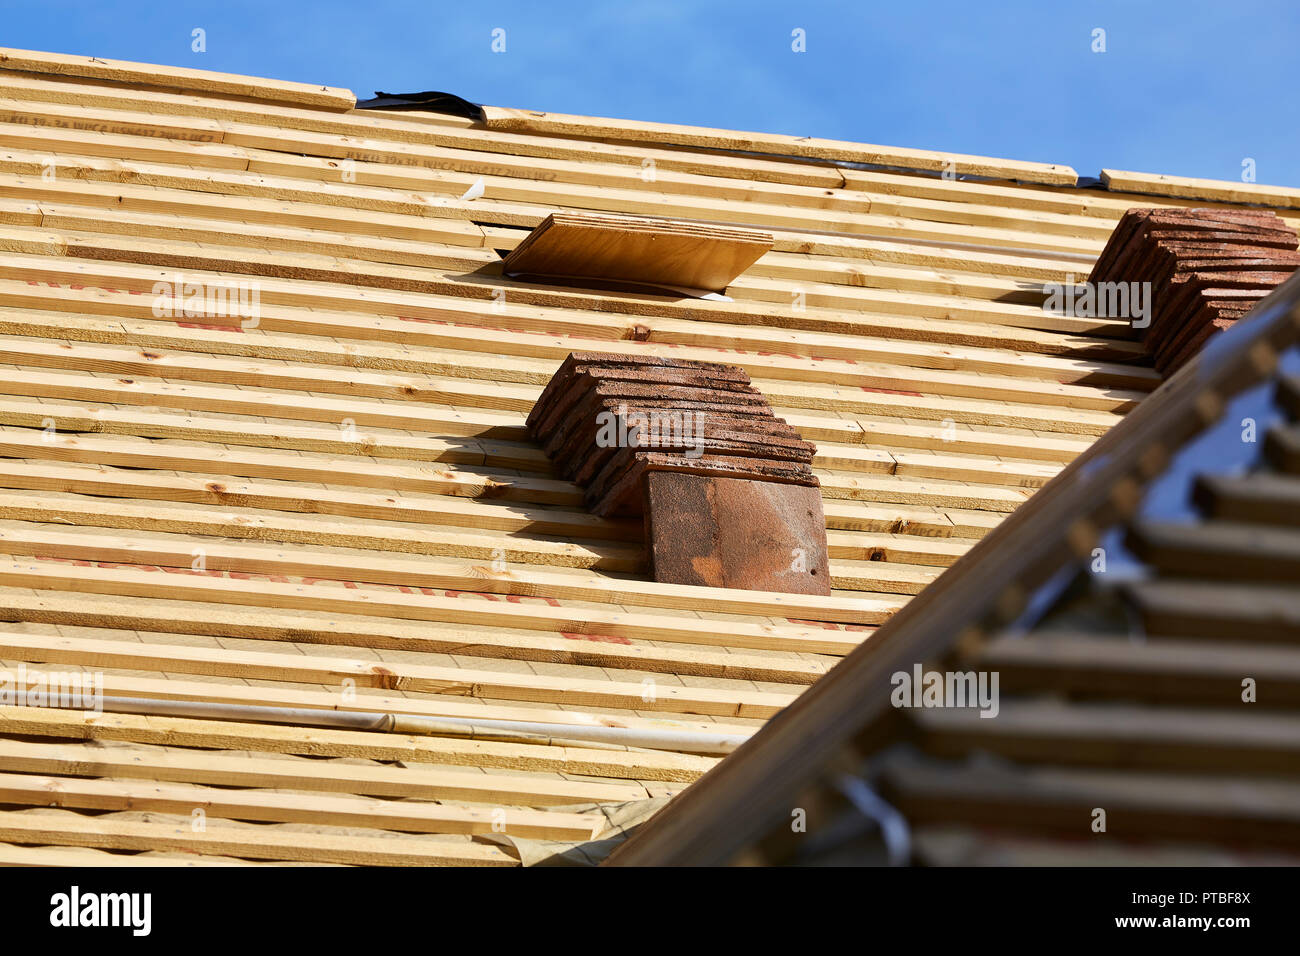 Dachpfannen Verlegen Roofing Tiles Stockfotos Roofing Tiles Bilder Alamy